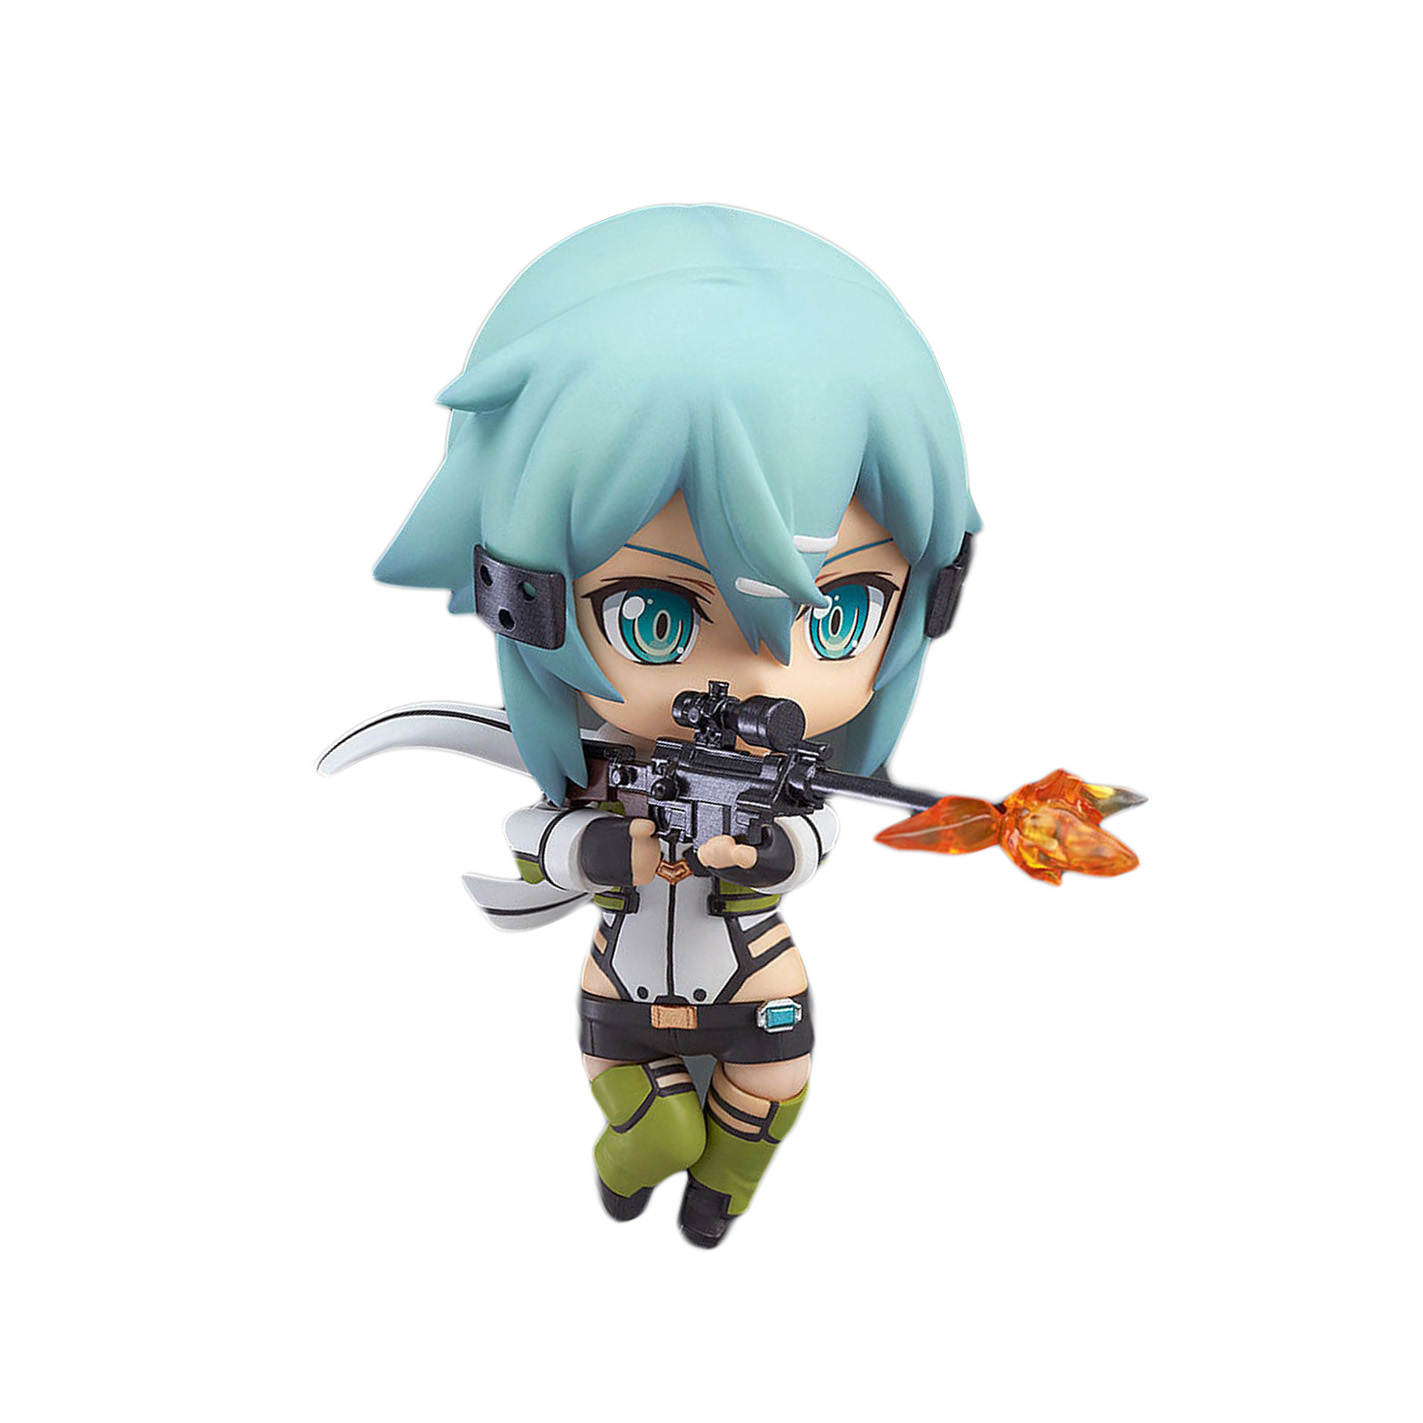 Chanycore GSC Nendoroid 452# Sword Art 2 Online SAO Gun Gale Online Asada Shino Sinon Kazuto Ghost Bullet Ver PVC Model 10cm 4'' sc32 800 free shipping standard air cylinders valve 32mm bore 800mm stroke sc32 800 single rod double acting pneumatic cylinder